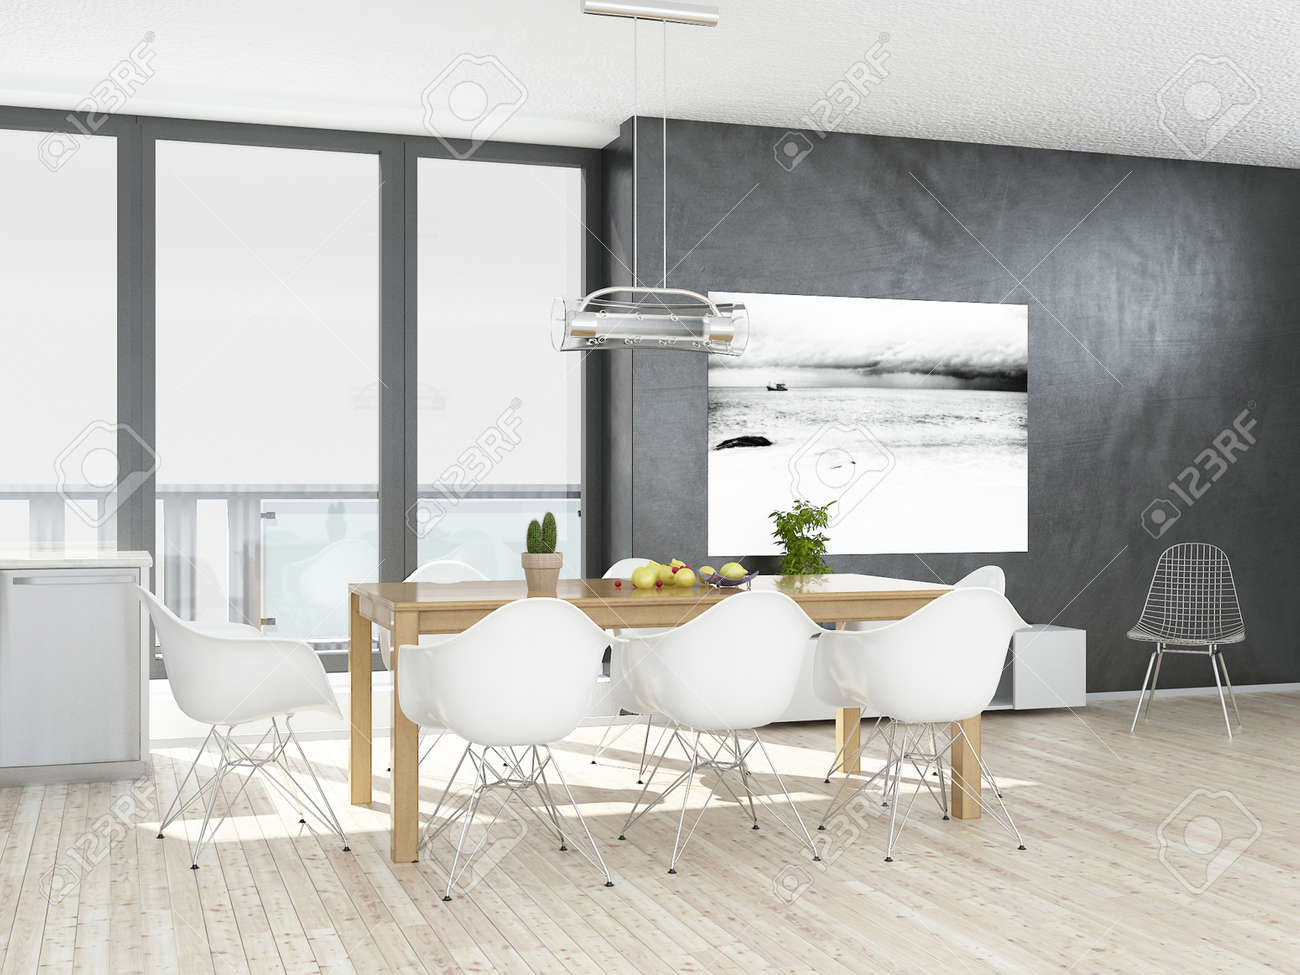 Modern Grey And White Dining Room With Wooden Floor Stock Photo